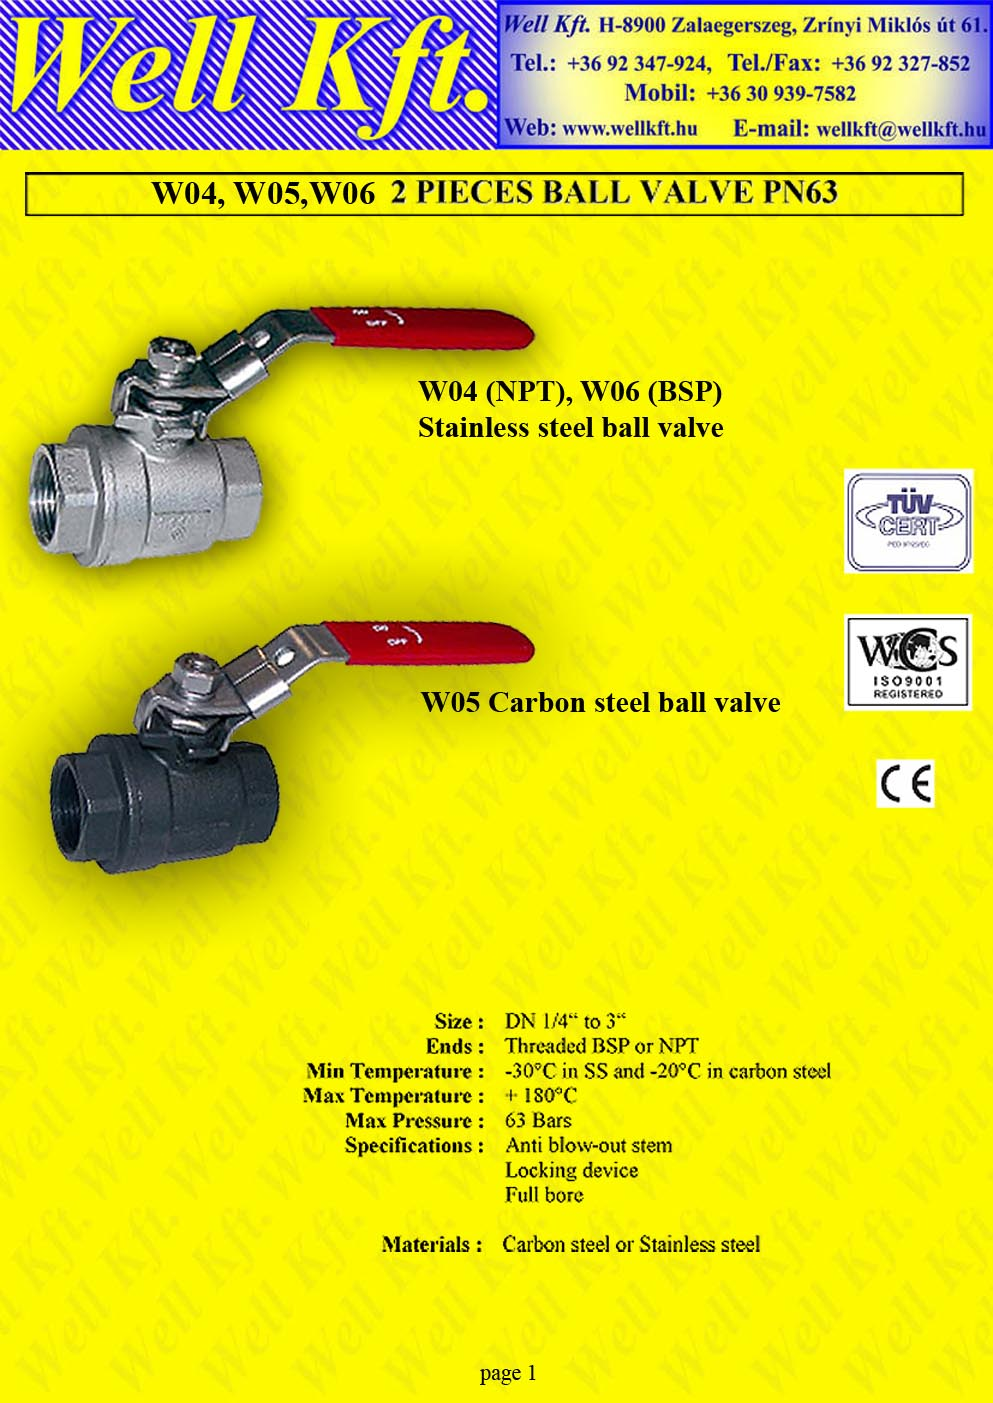 2 pieces ball valve stainless steel, carbon steel, female PN 25-60 (1.)